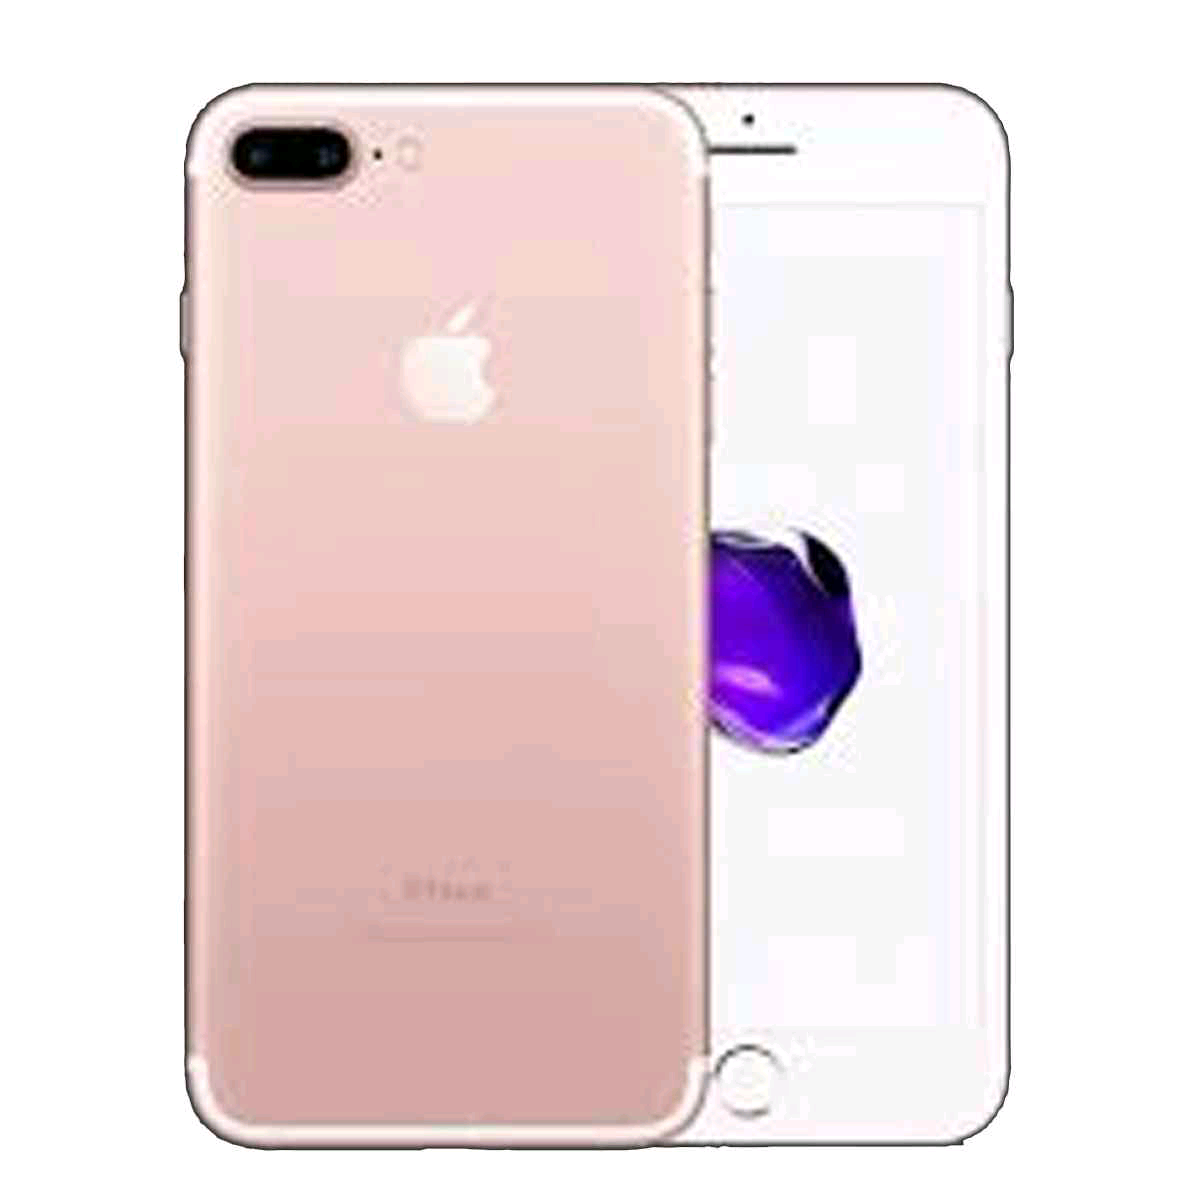 iphone 7 purchase price